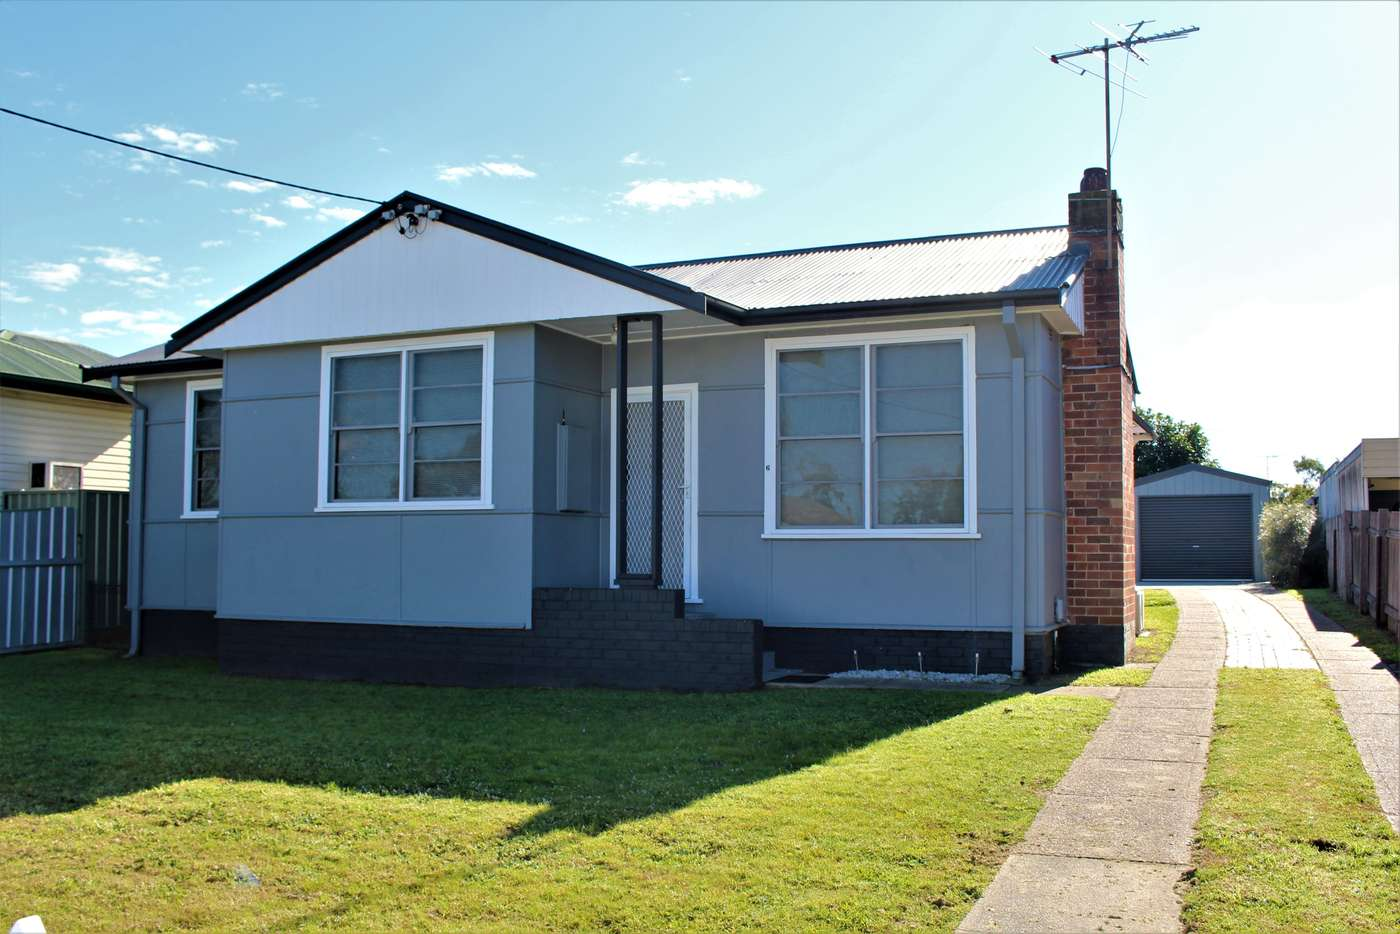 Main view of Homely house listing, 6 Lambert Street, Cessnock NSW 2325